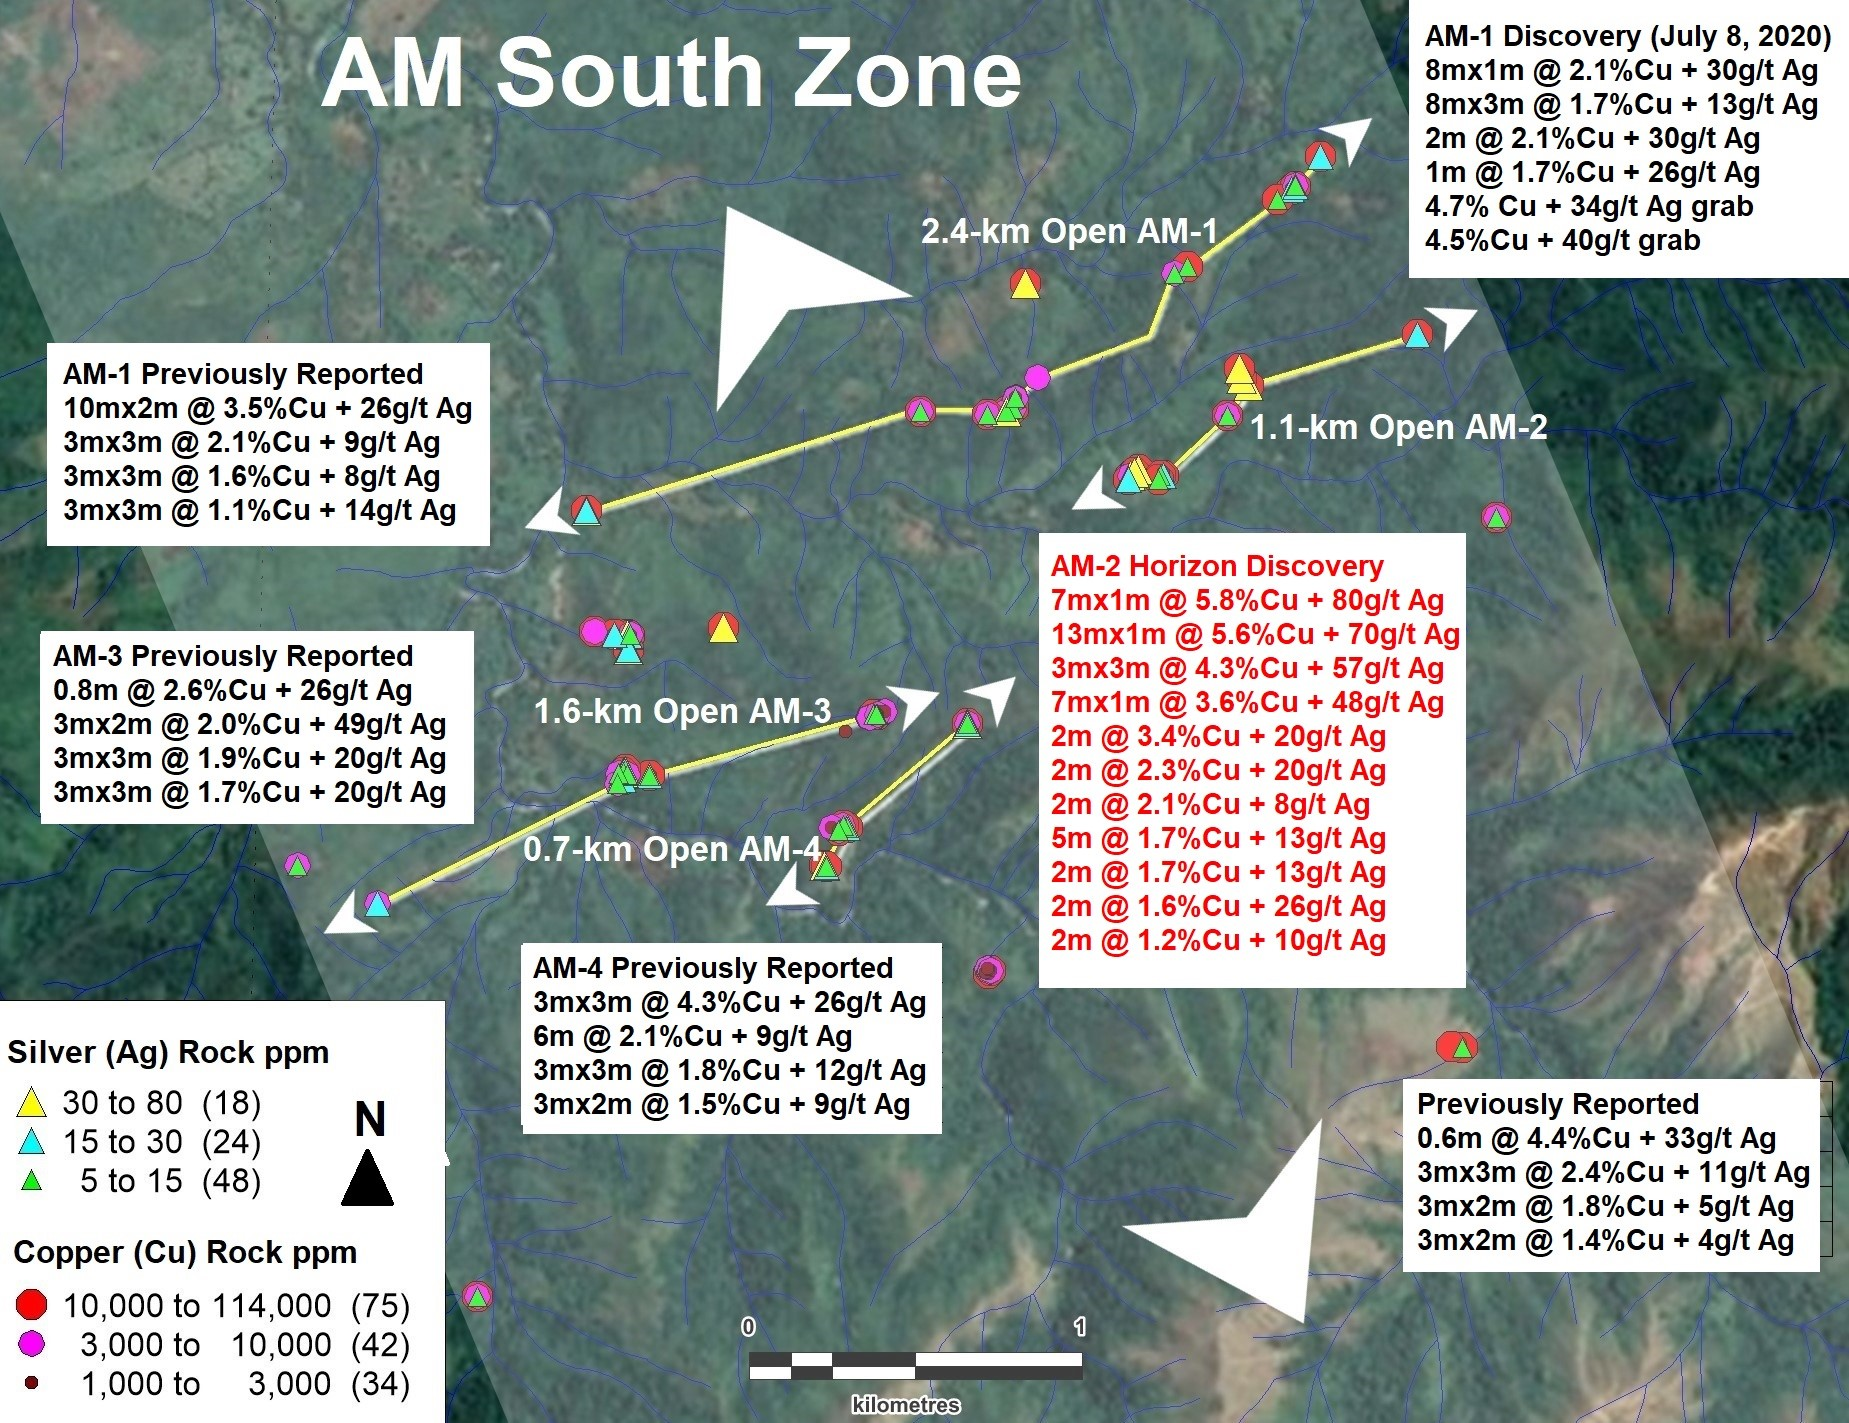 MAX Resource July 14th News - Figure 02 AM South Zone (4-kilometre by 3-kilometre Open)